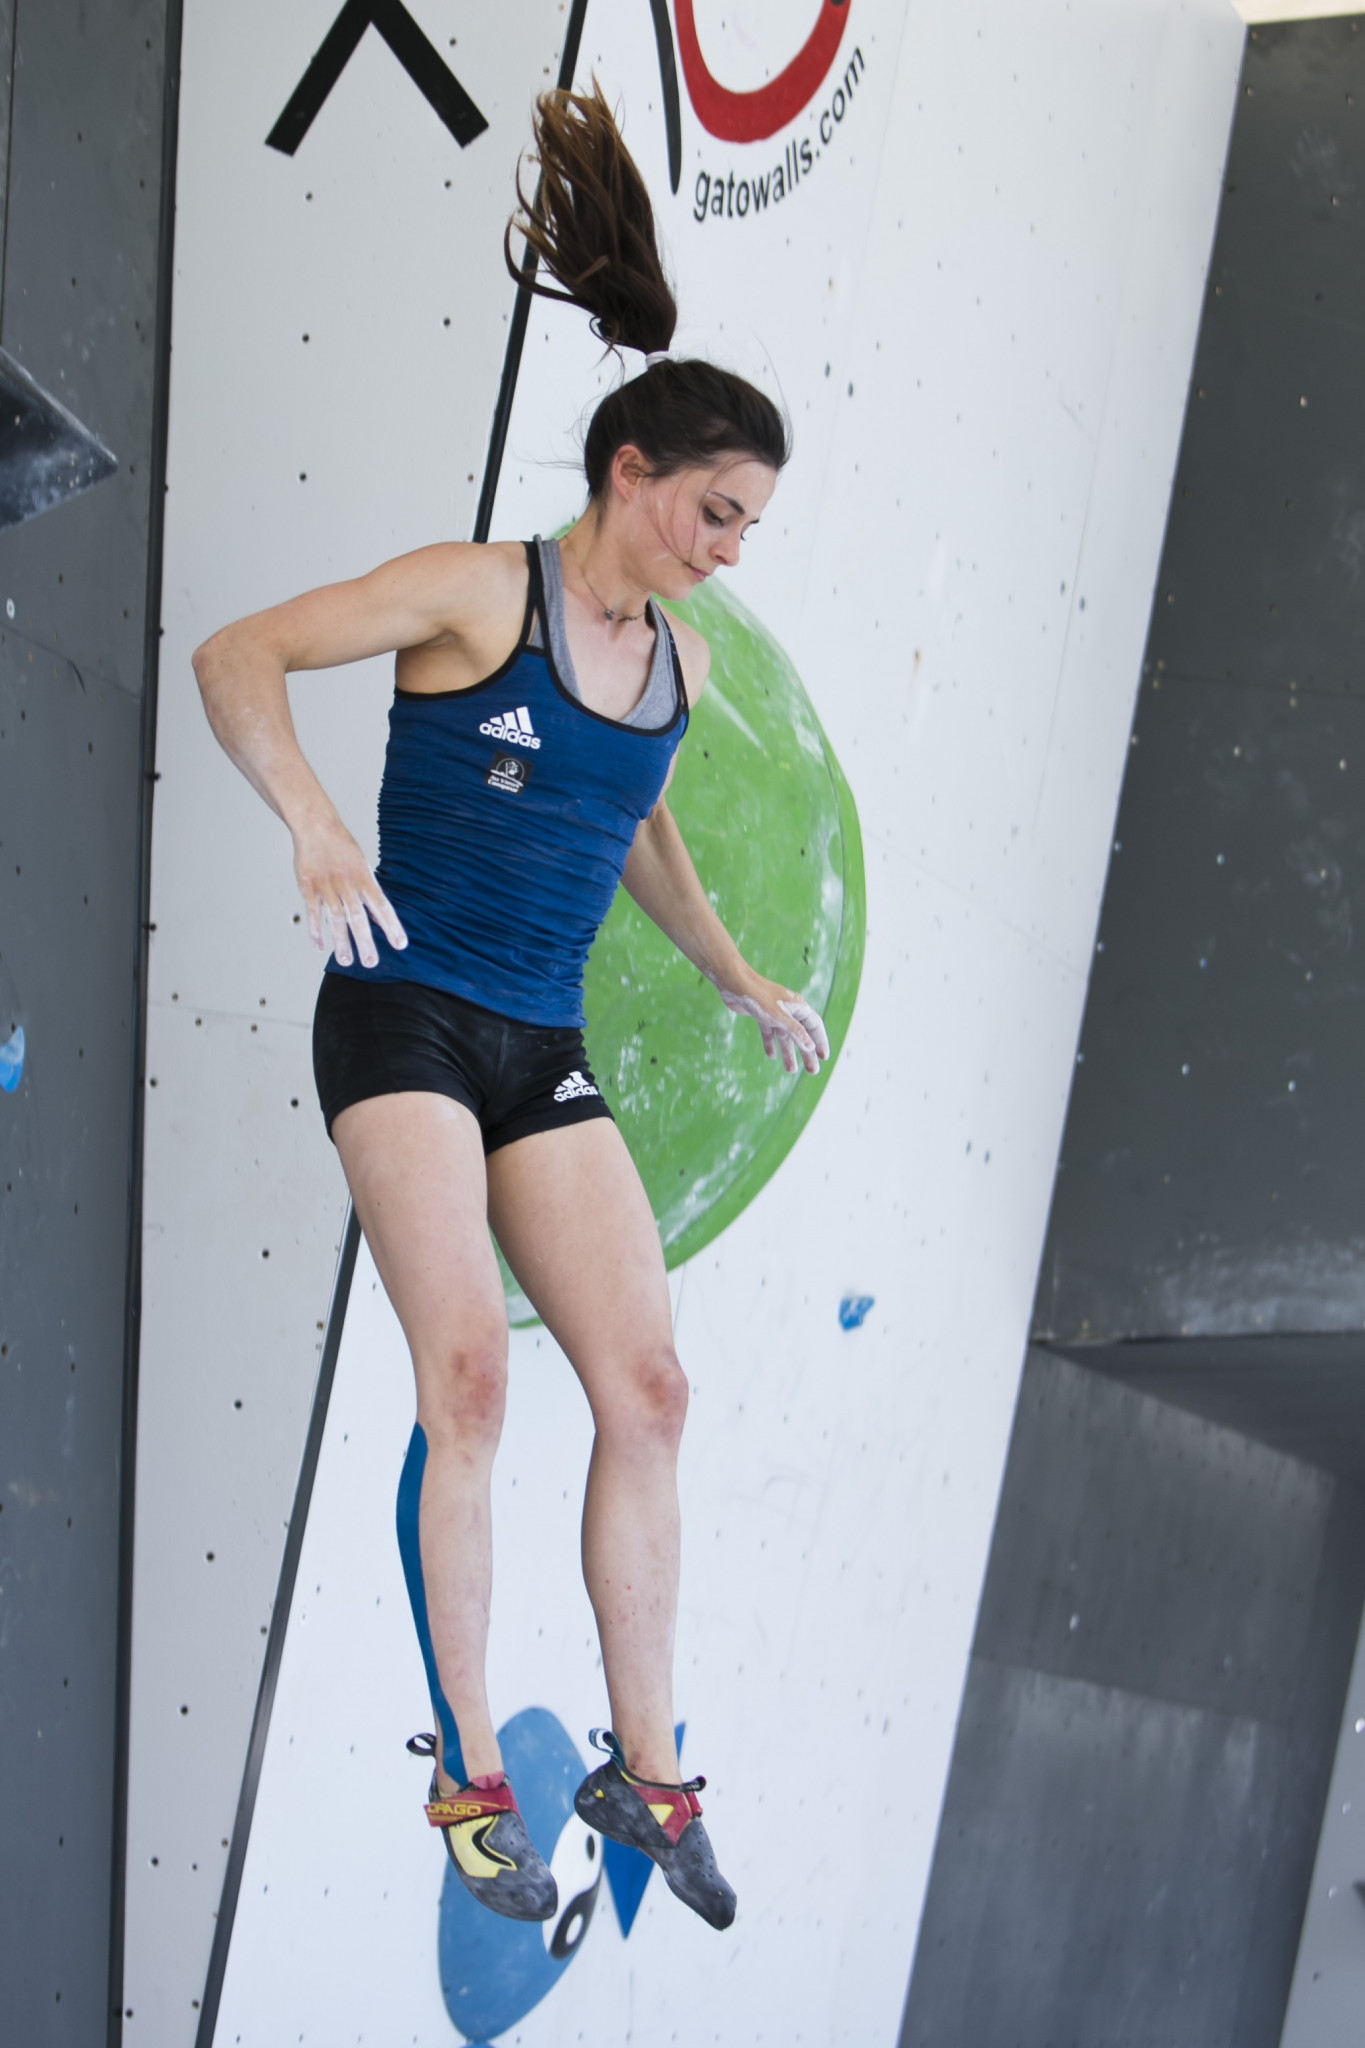 France's Maëlys Agrapart came out on top in the women's bouldering qualifying ©FISU